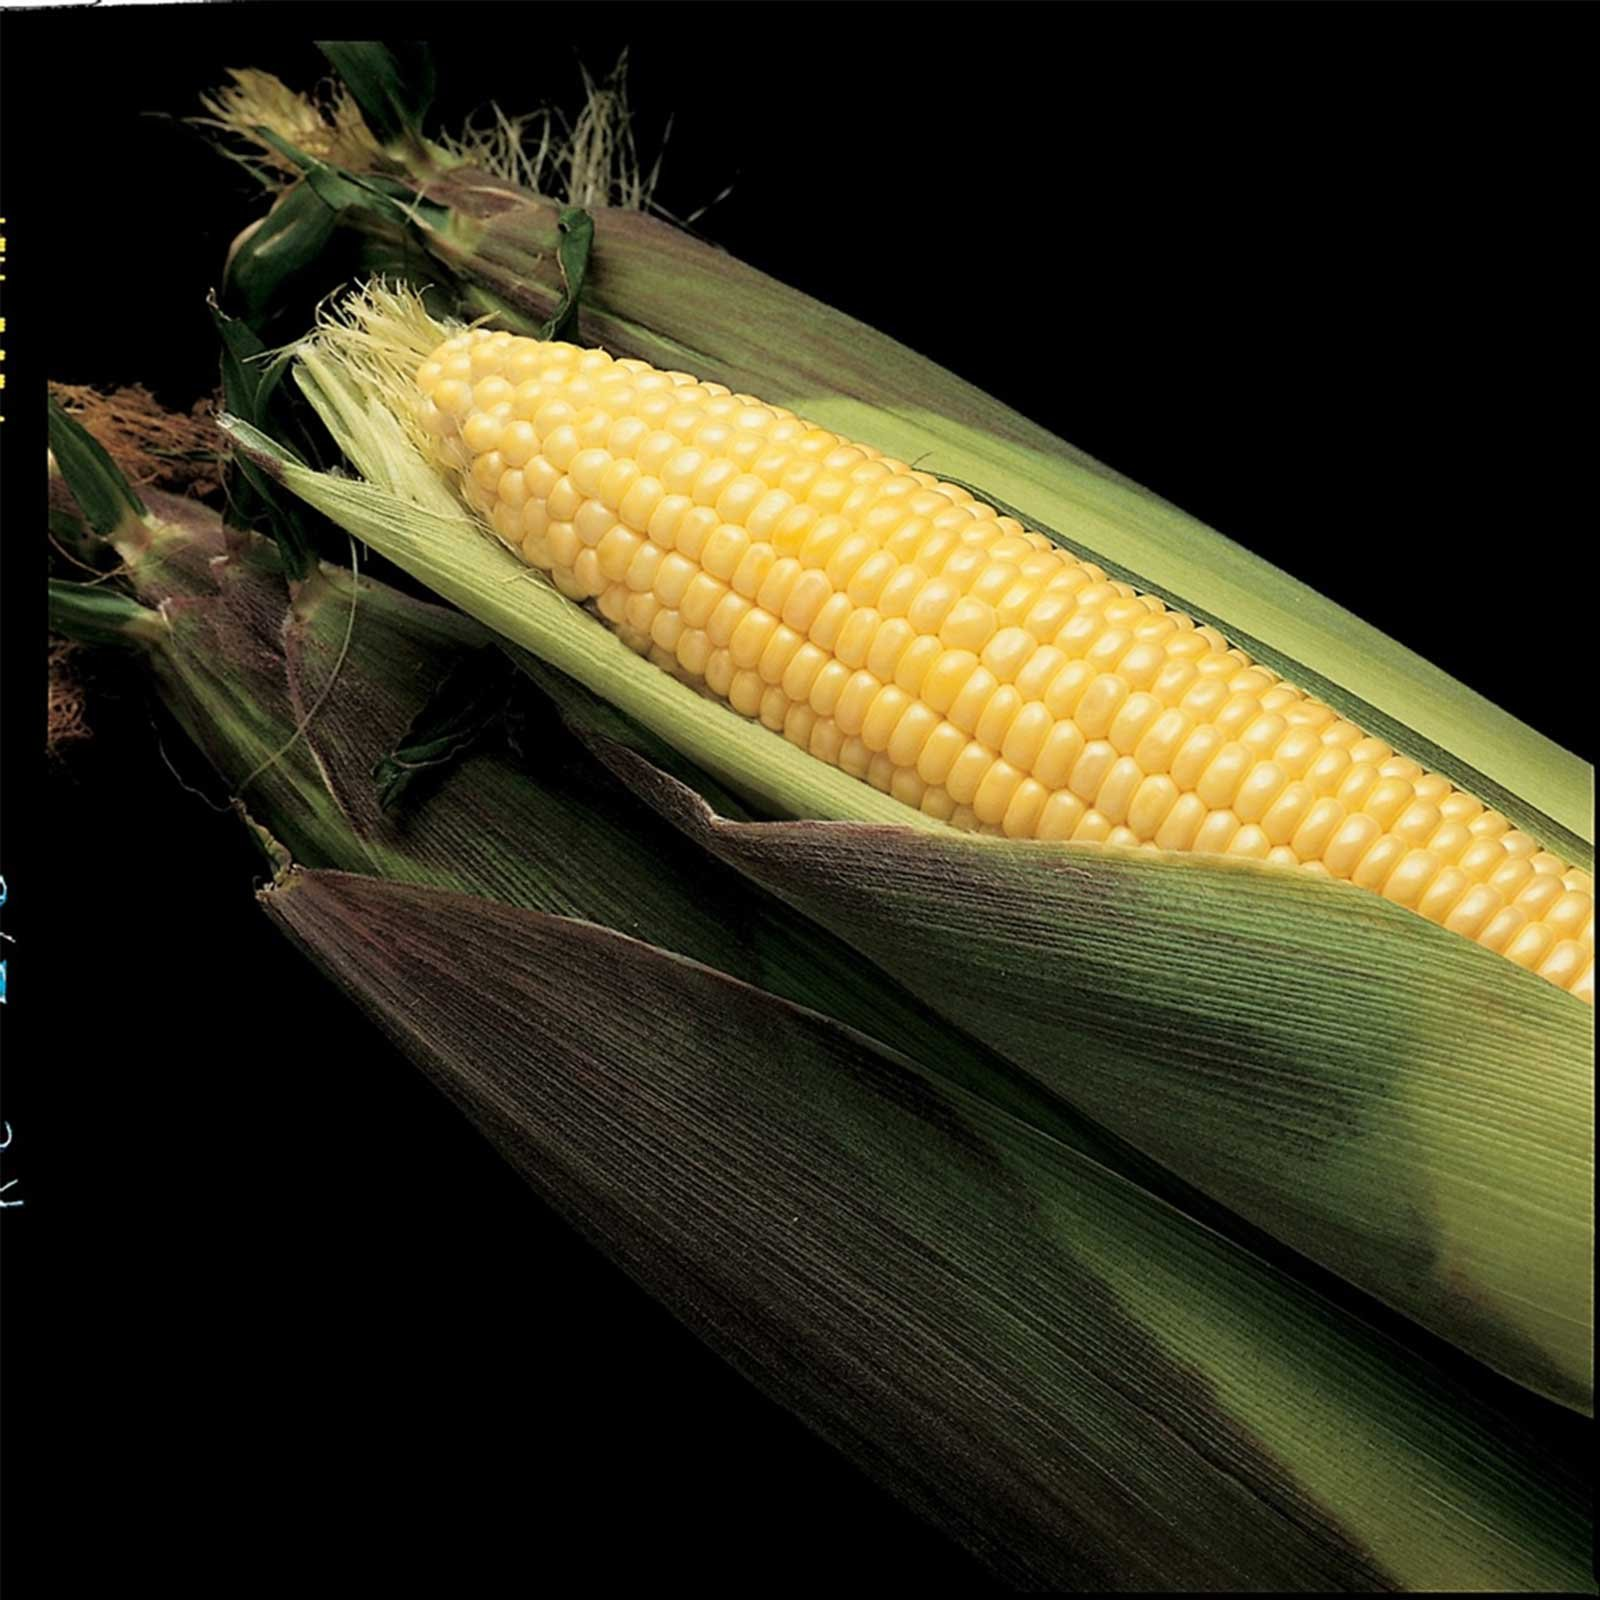 Kandy Korn Hybrid Corn Garden Seeds - 1 Lb - Non-GMO Vegetable Gardening Seeds - Yellow Sweet (SE) Corn Seed & Micro Shoots by Mountain Valley Seed Company (Image #1)